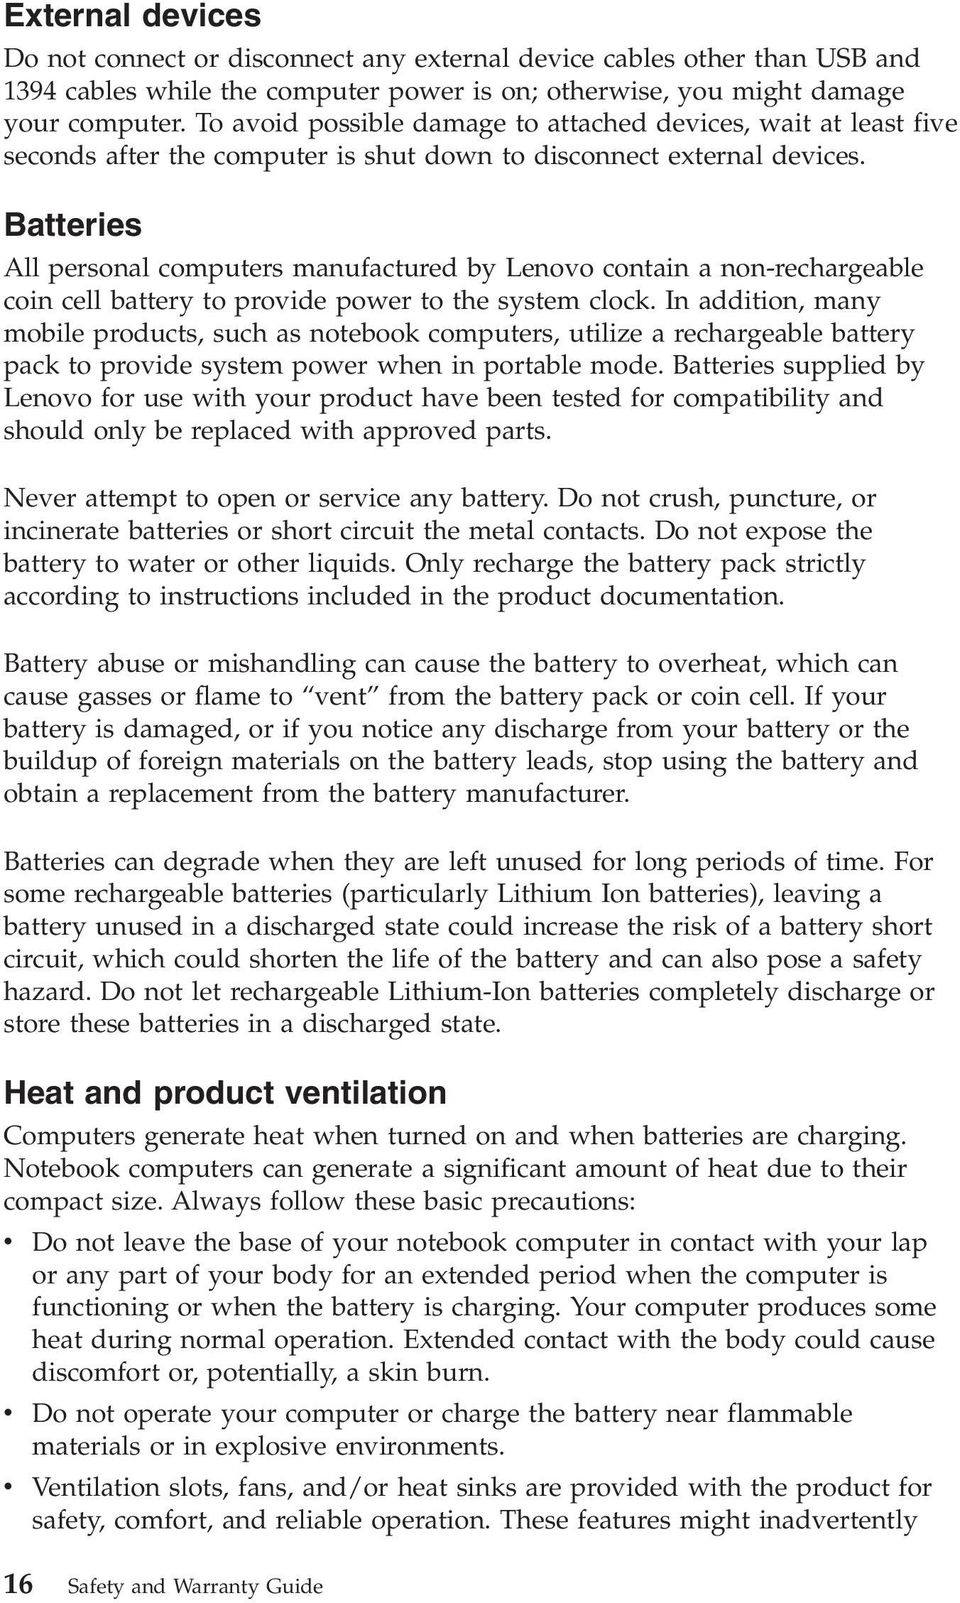 Batteries All personal computers manufactured by Lenovo contain a non-rechargeable coin cell battery to provide power to the system clock.